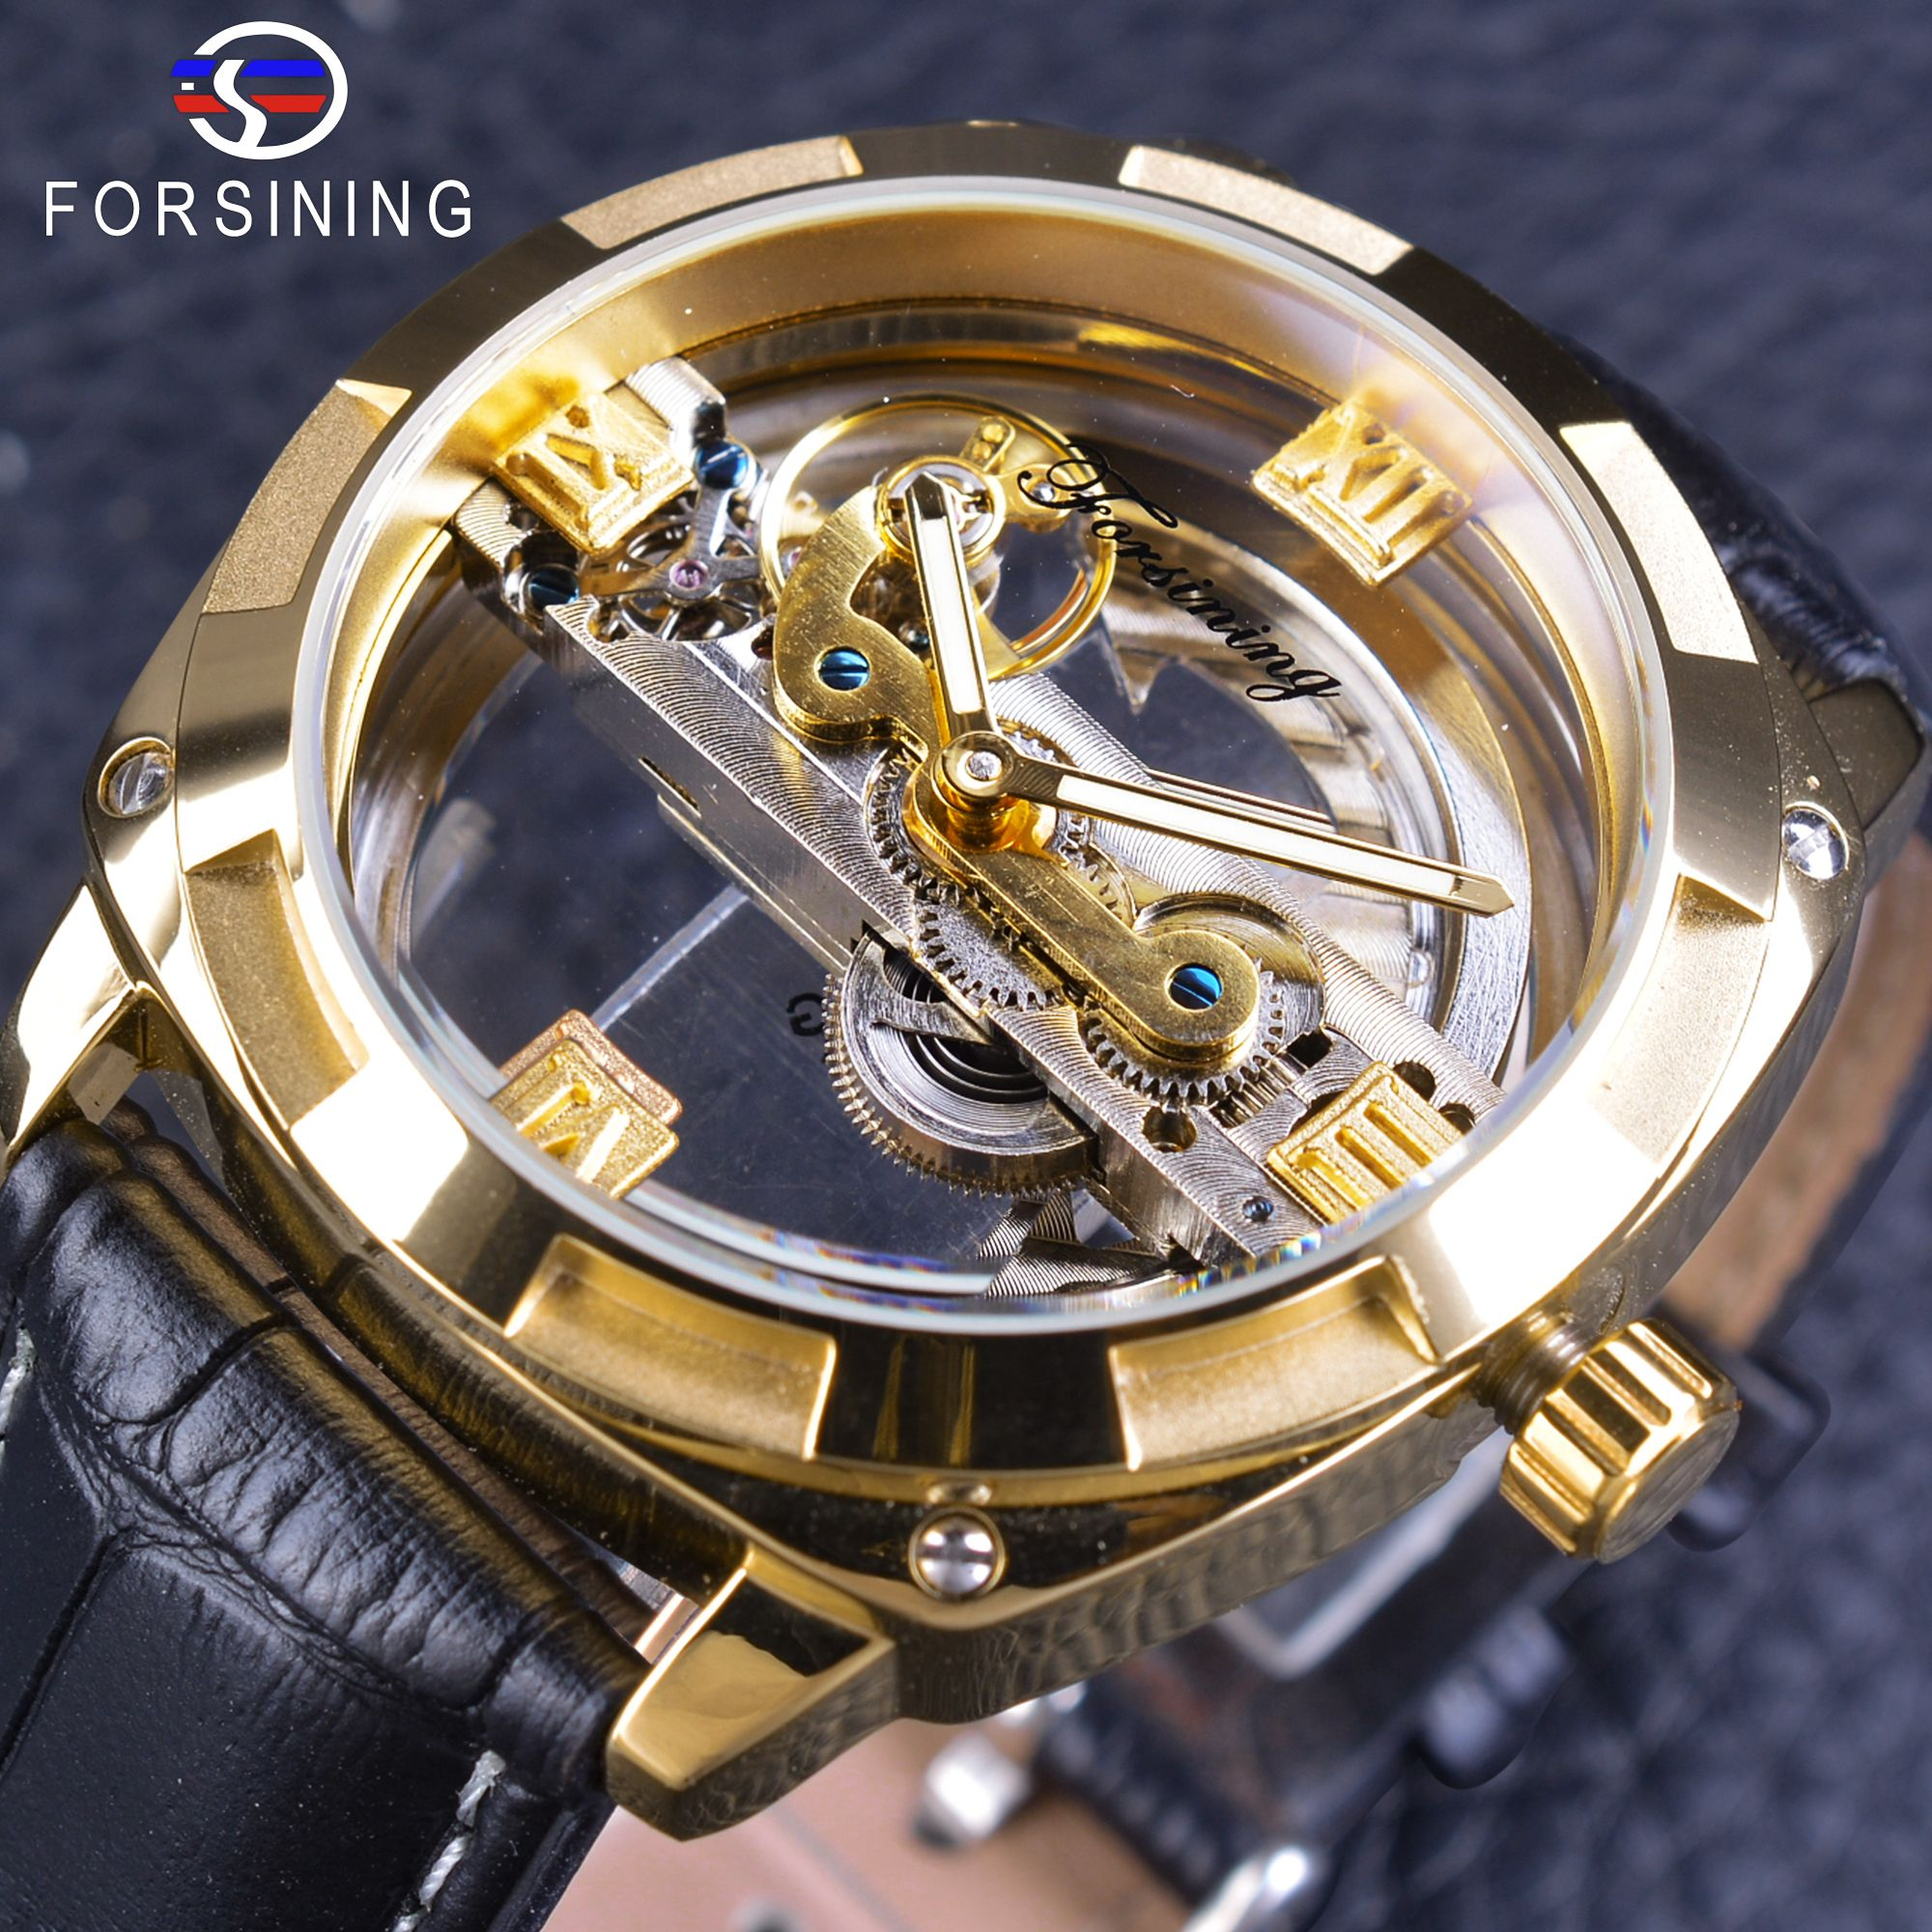 Forsining Official Exclusive Sale Golden Double Side Men's Watch Top Brand Luxury Automatic Wristwatches Genuine Leather Strap